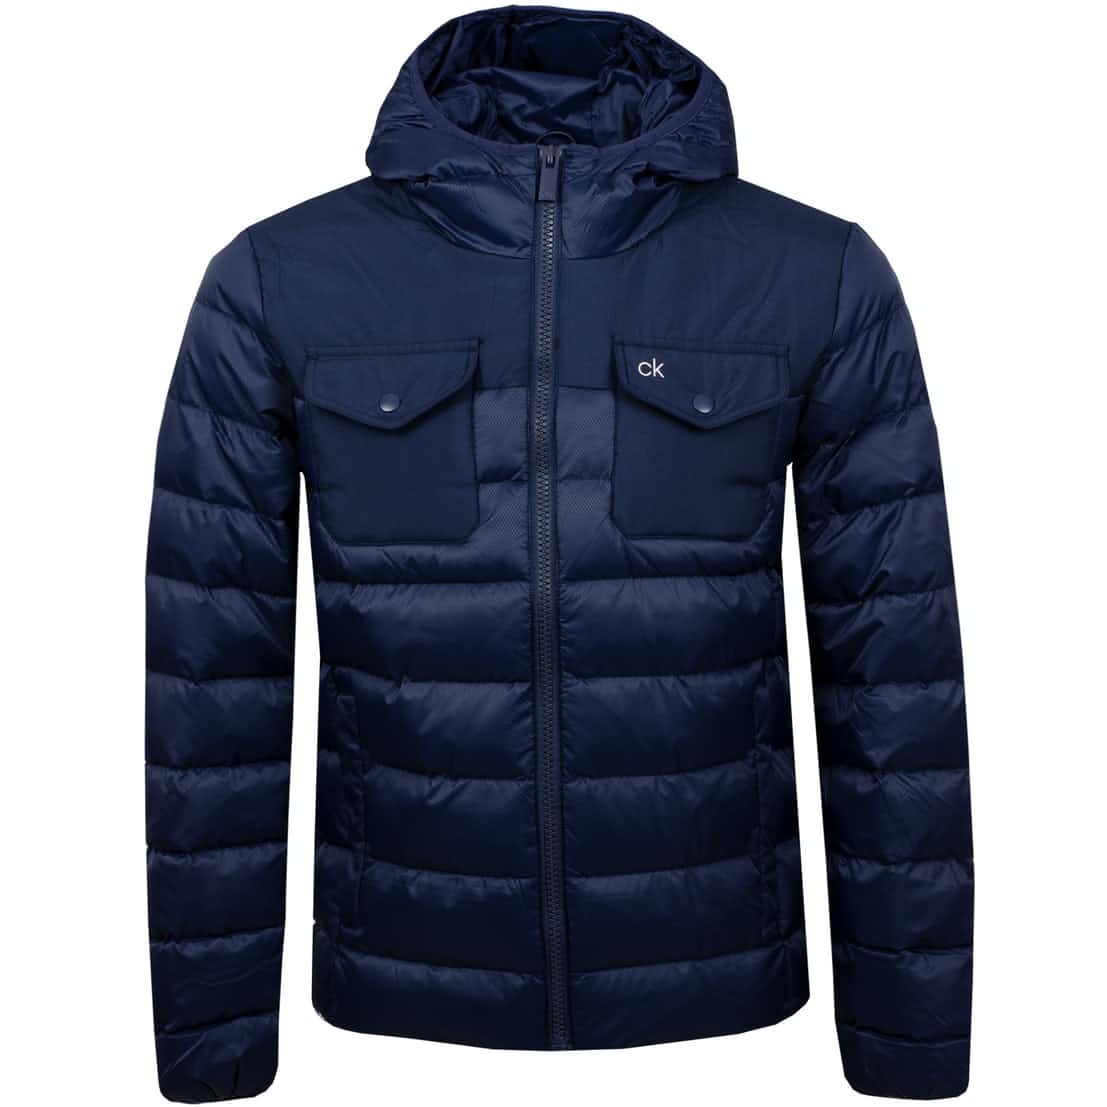 Starboard Jacket Navy - AW19